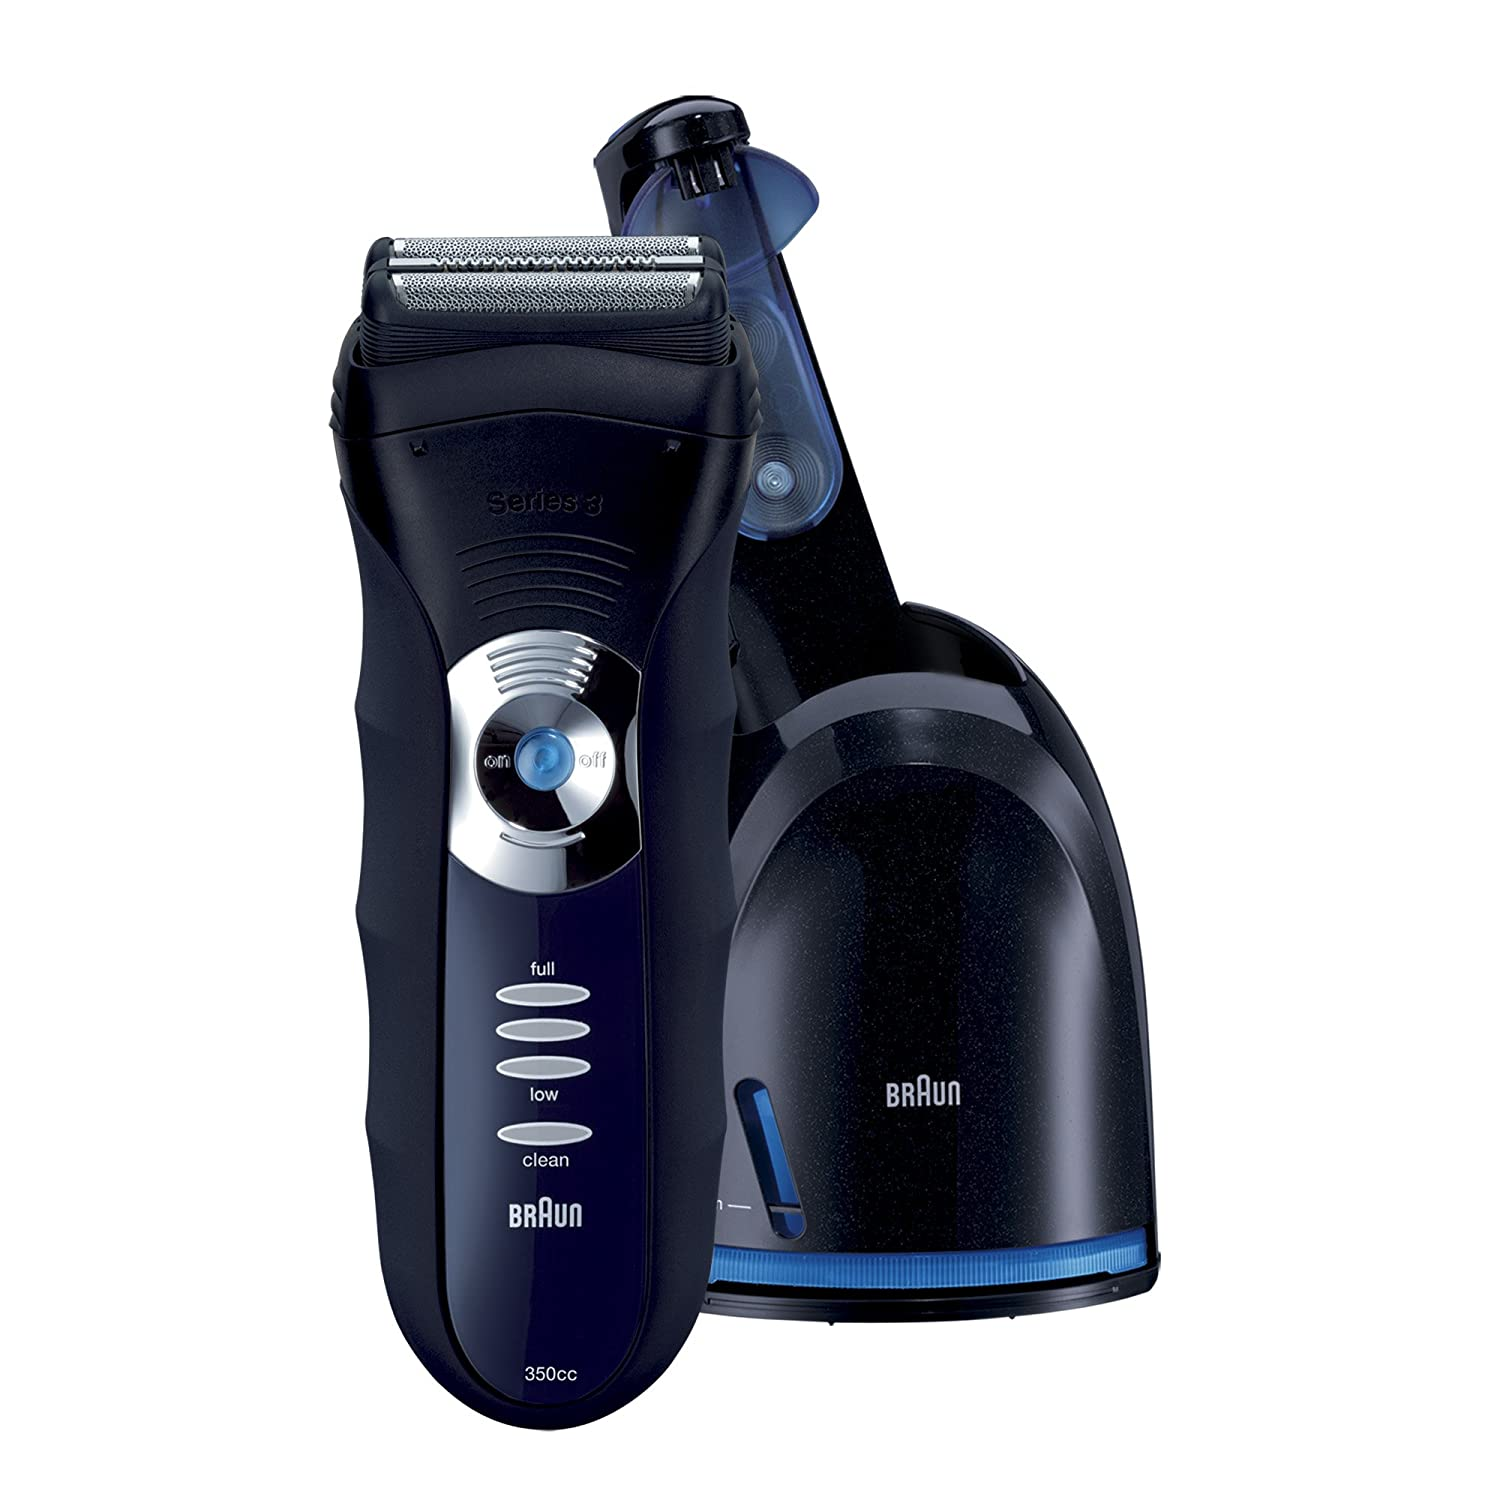 Braun 3 Series 350cc-4 Shaver, Black/Blue